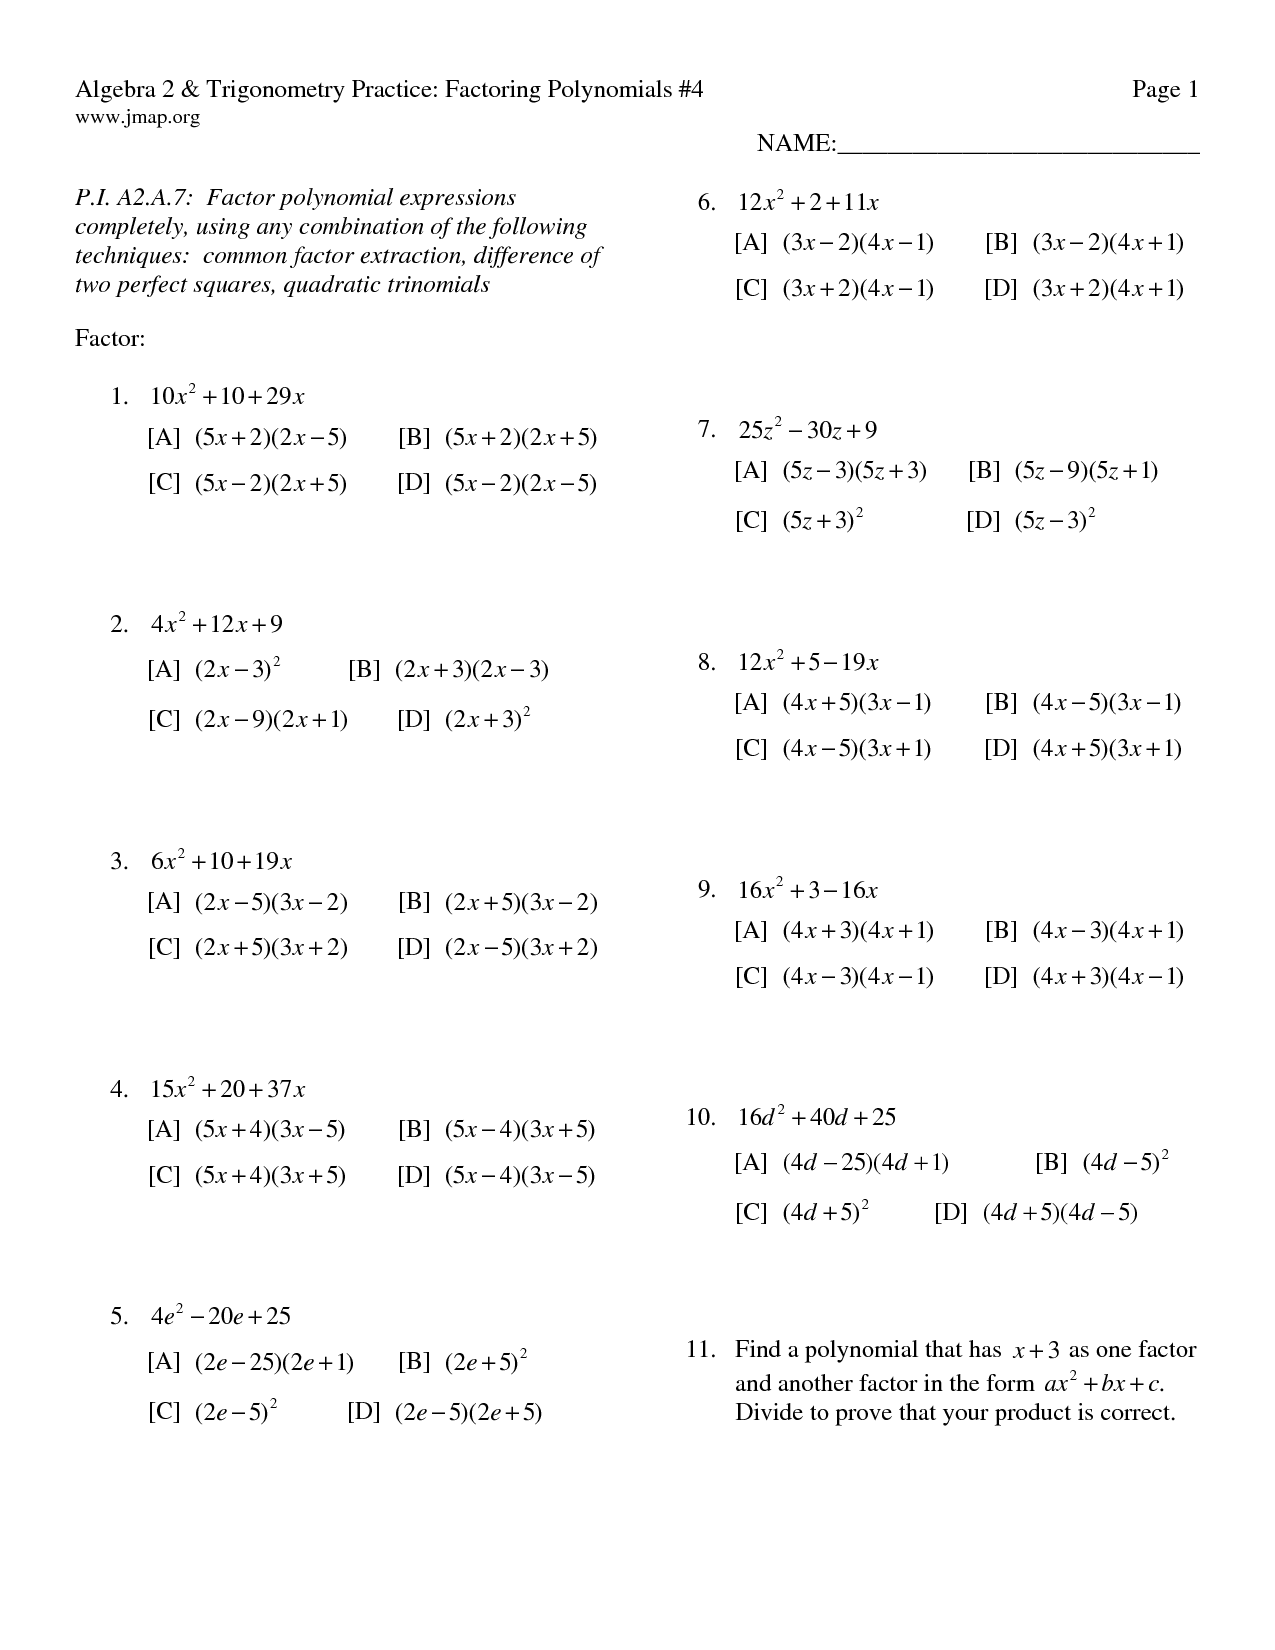 Infinite Algebra 1 One Step Equations Answer Key